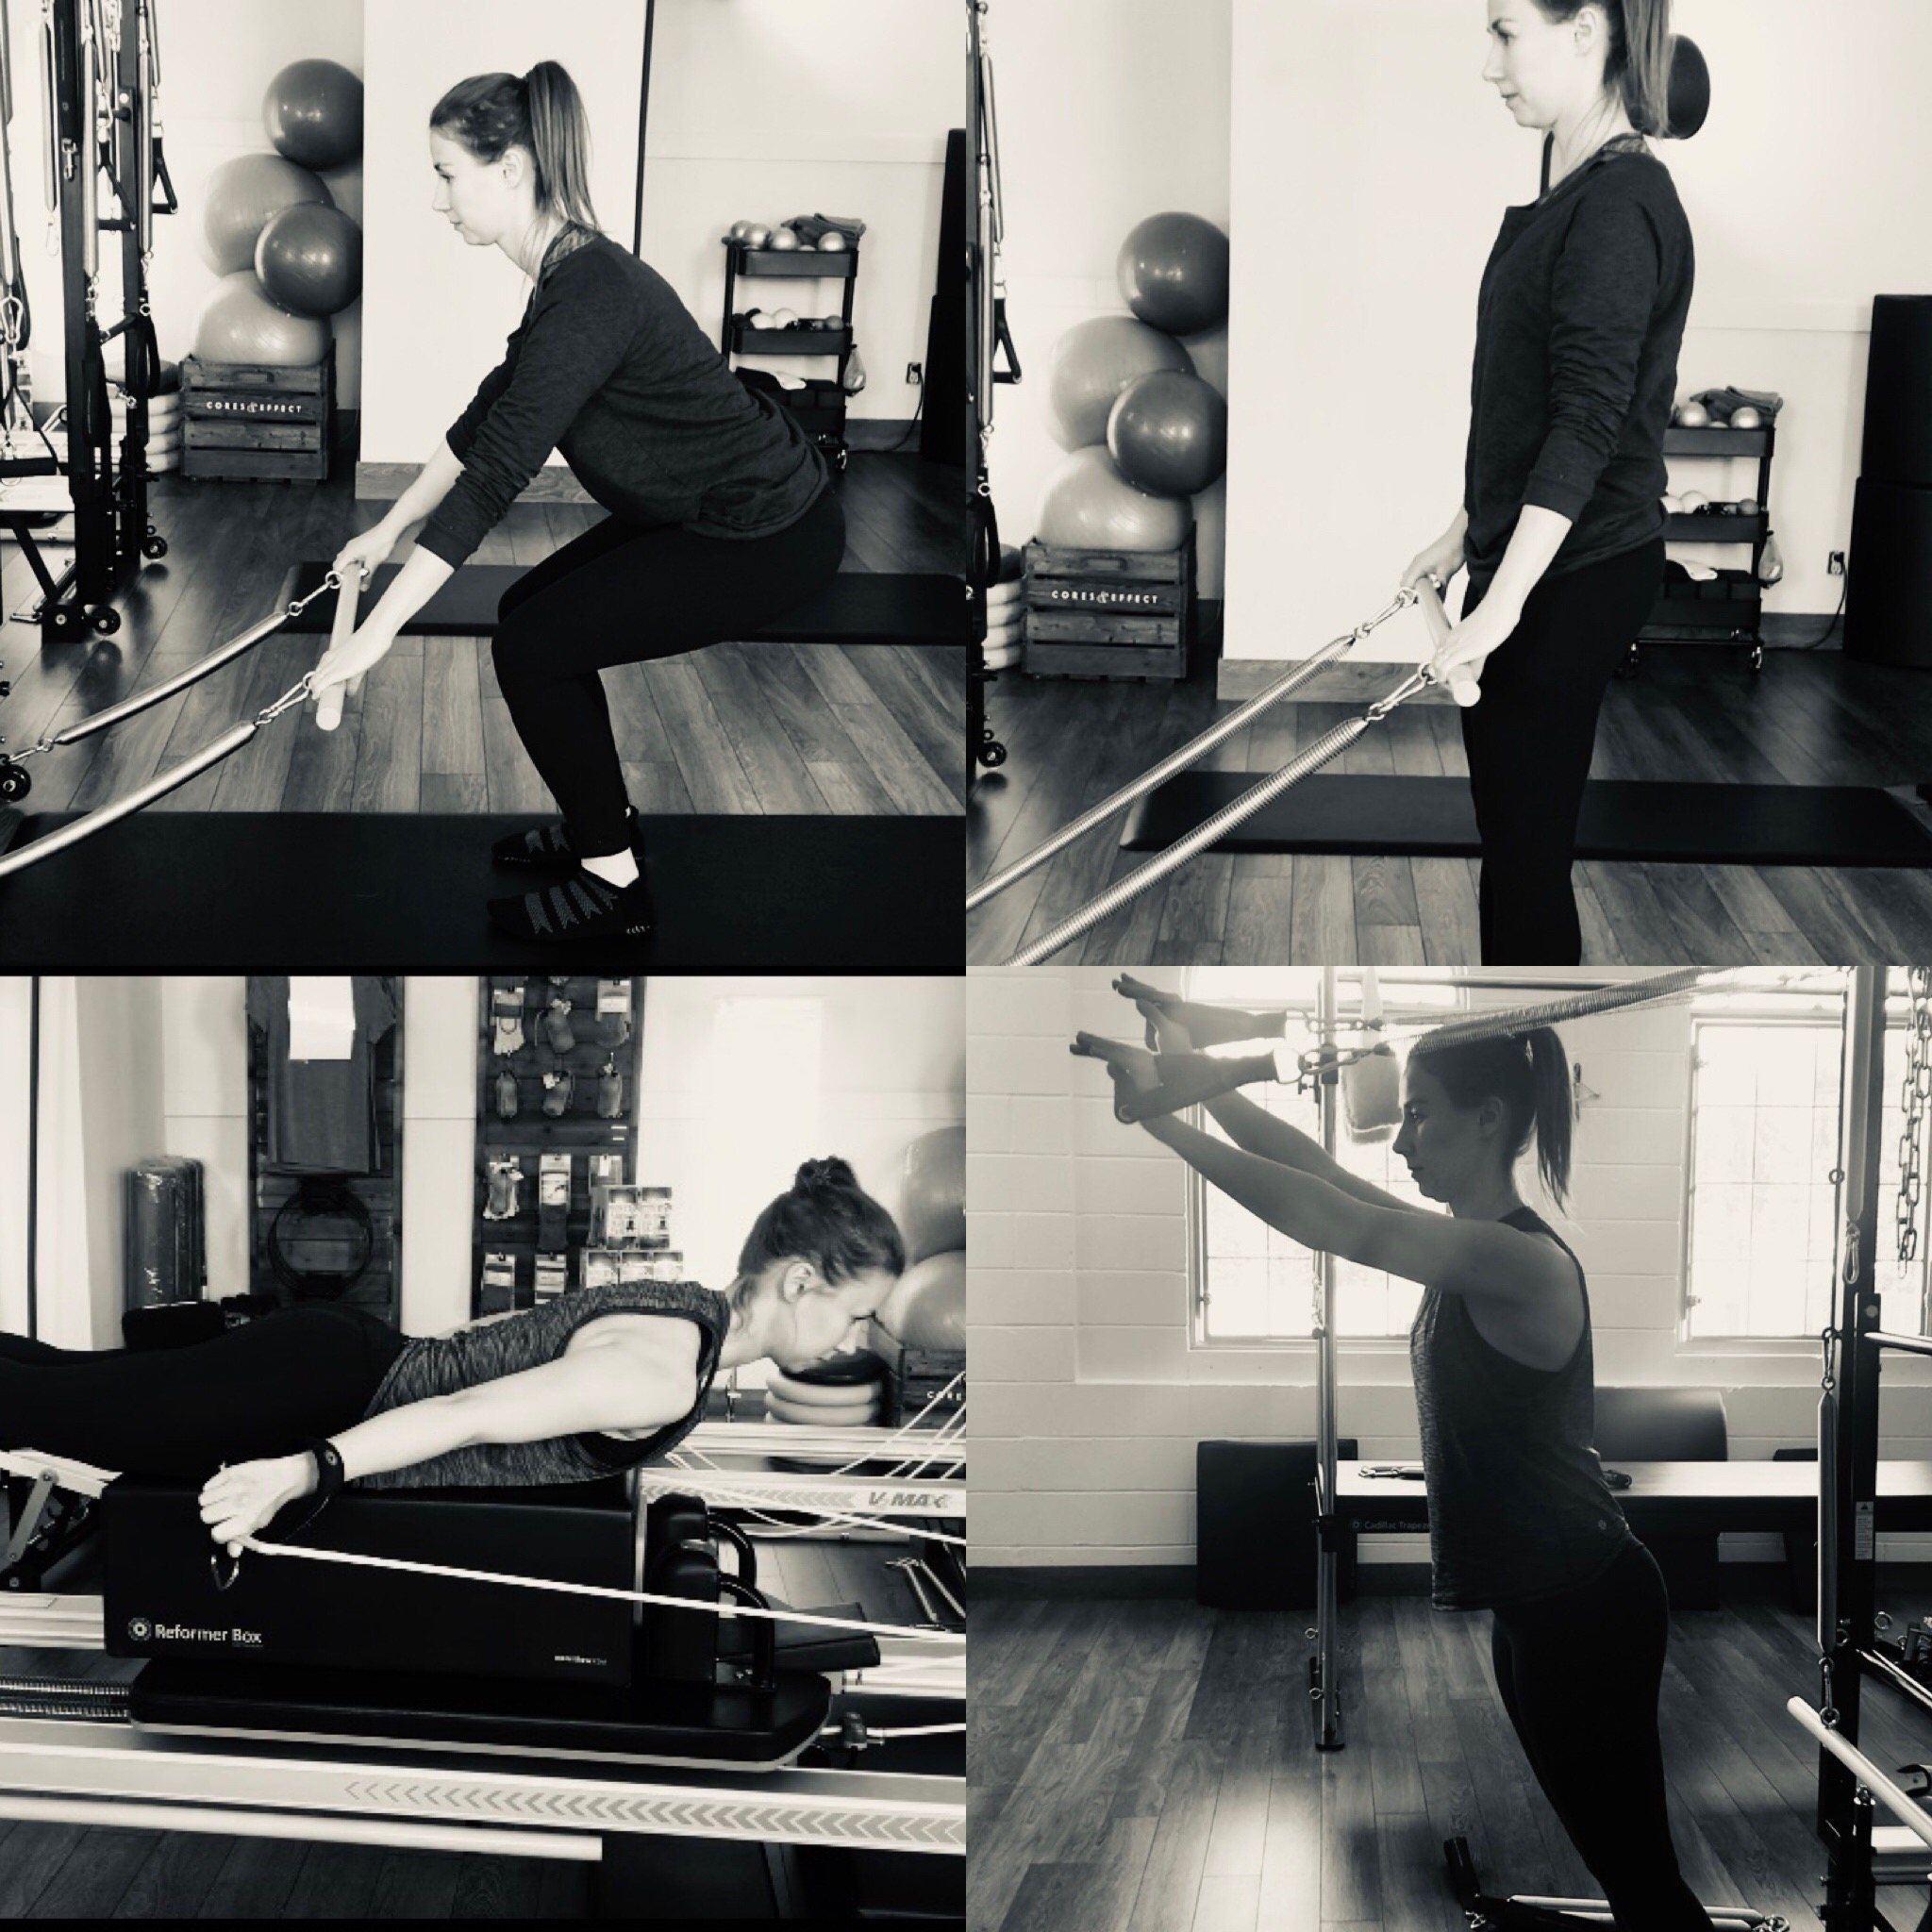 Sara's Experience with Pilates